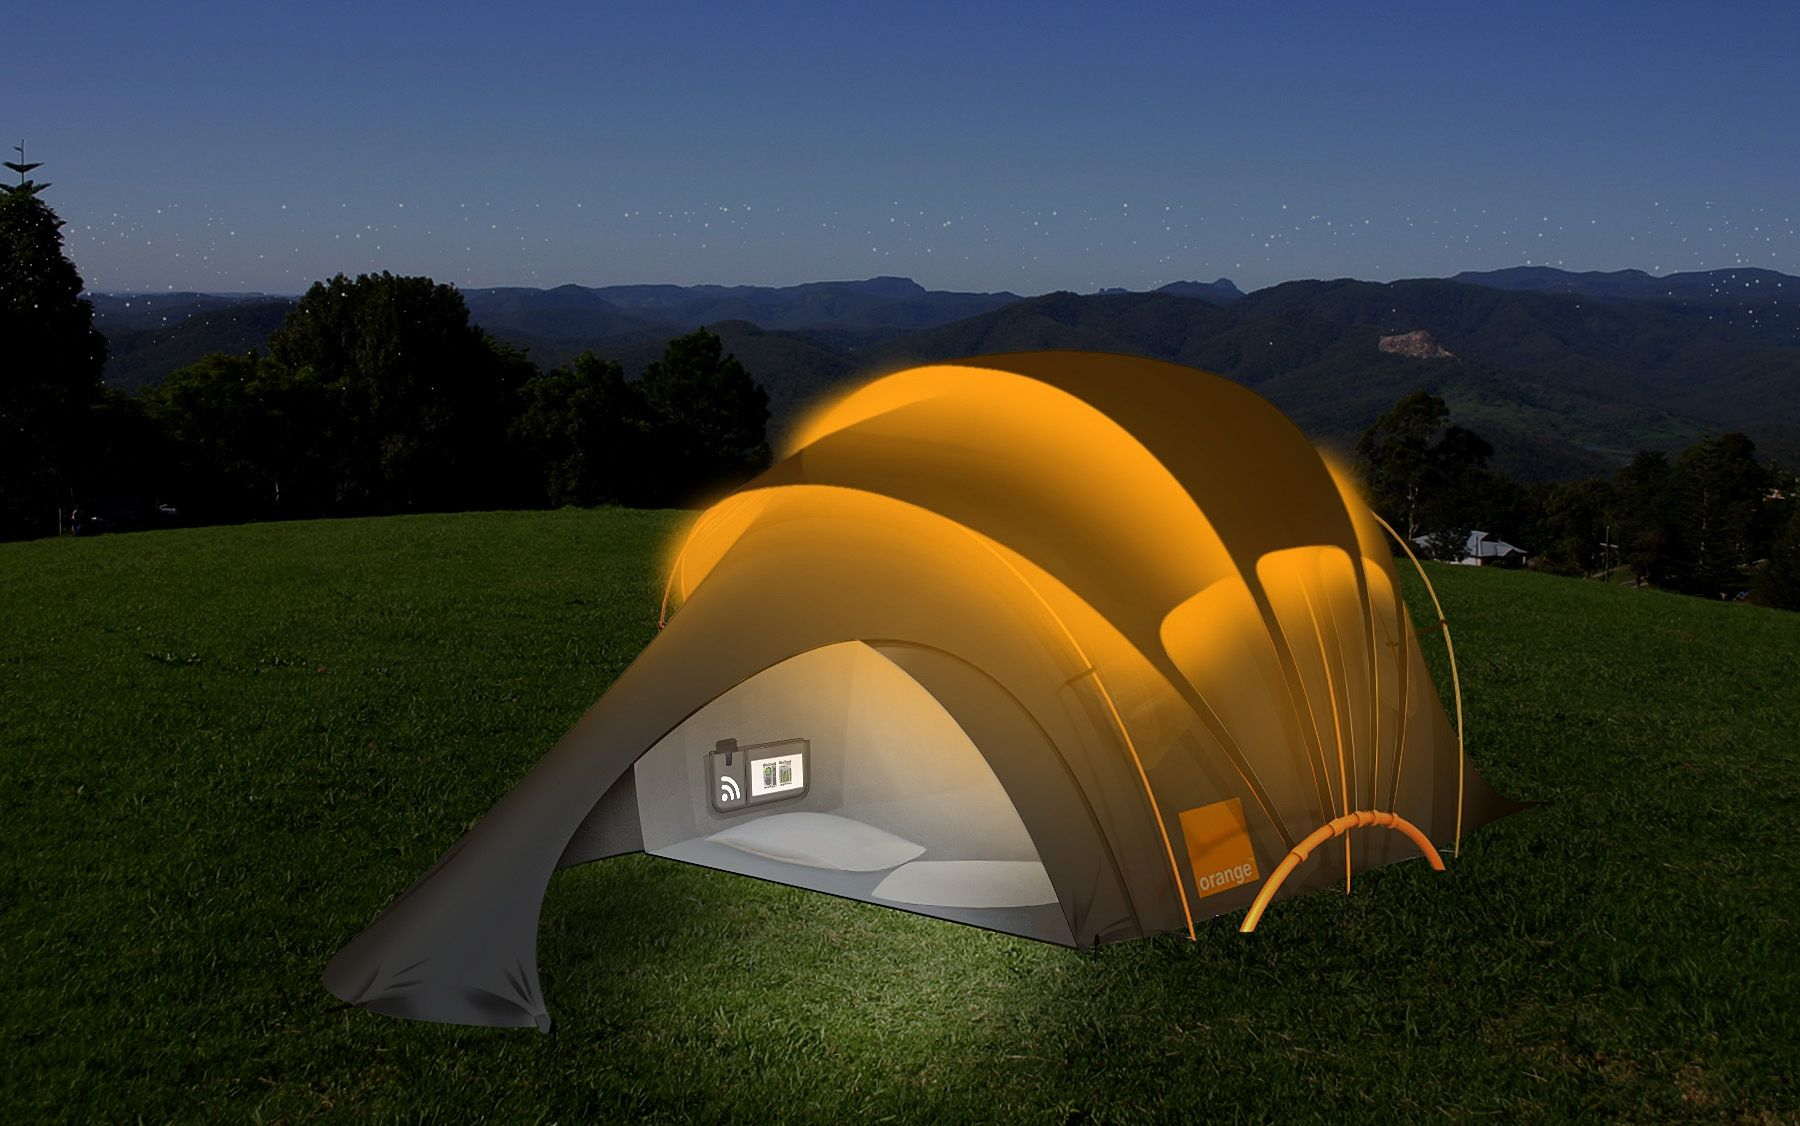 Orange Chill u0027Nu0027 Charge Tent- Solar Tent That Glows & Orange Chill u0027Nu0027 Charge Tent- Solar Tent That Glows | Tents Solar ...